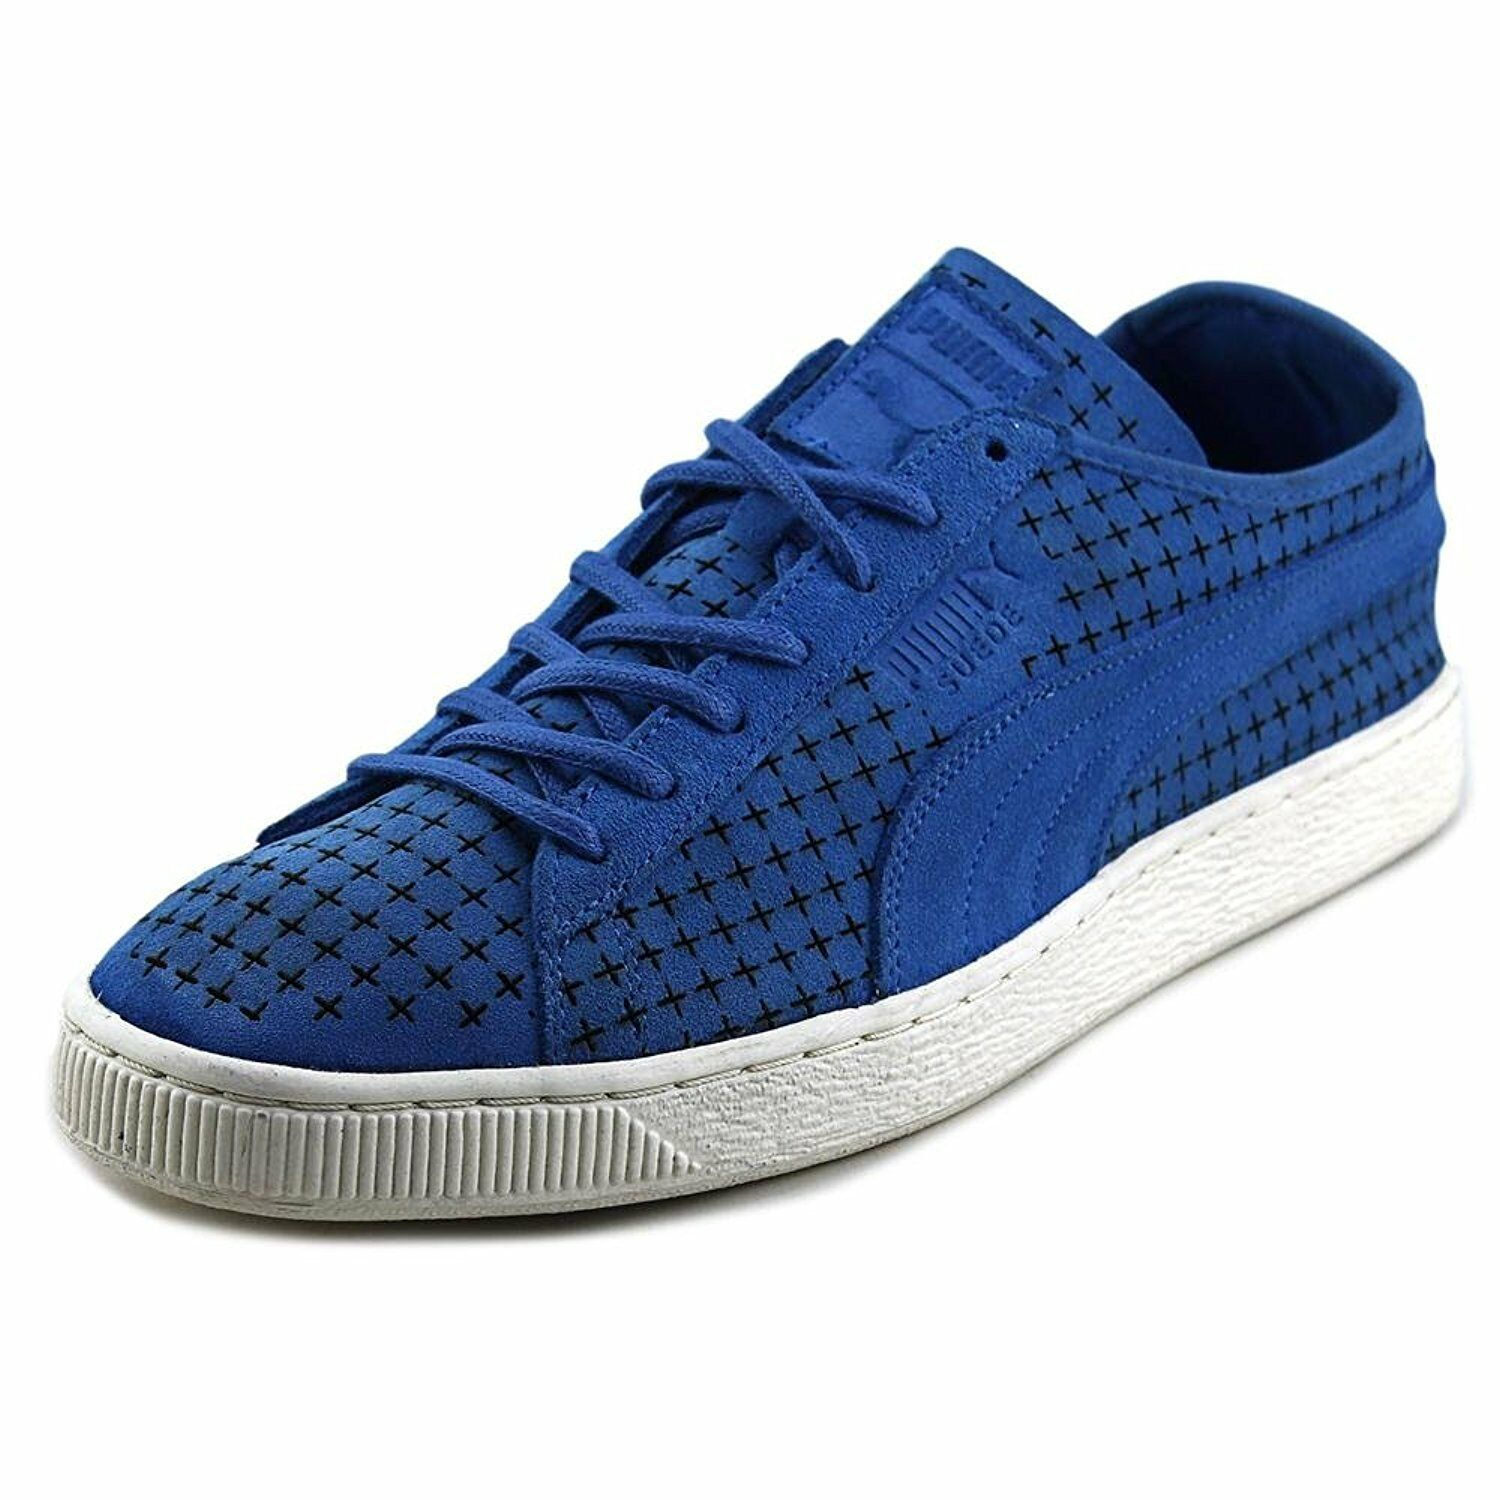 Puma Courtside Perf Men US 10.5 Blue Sneakers